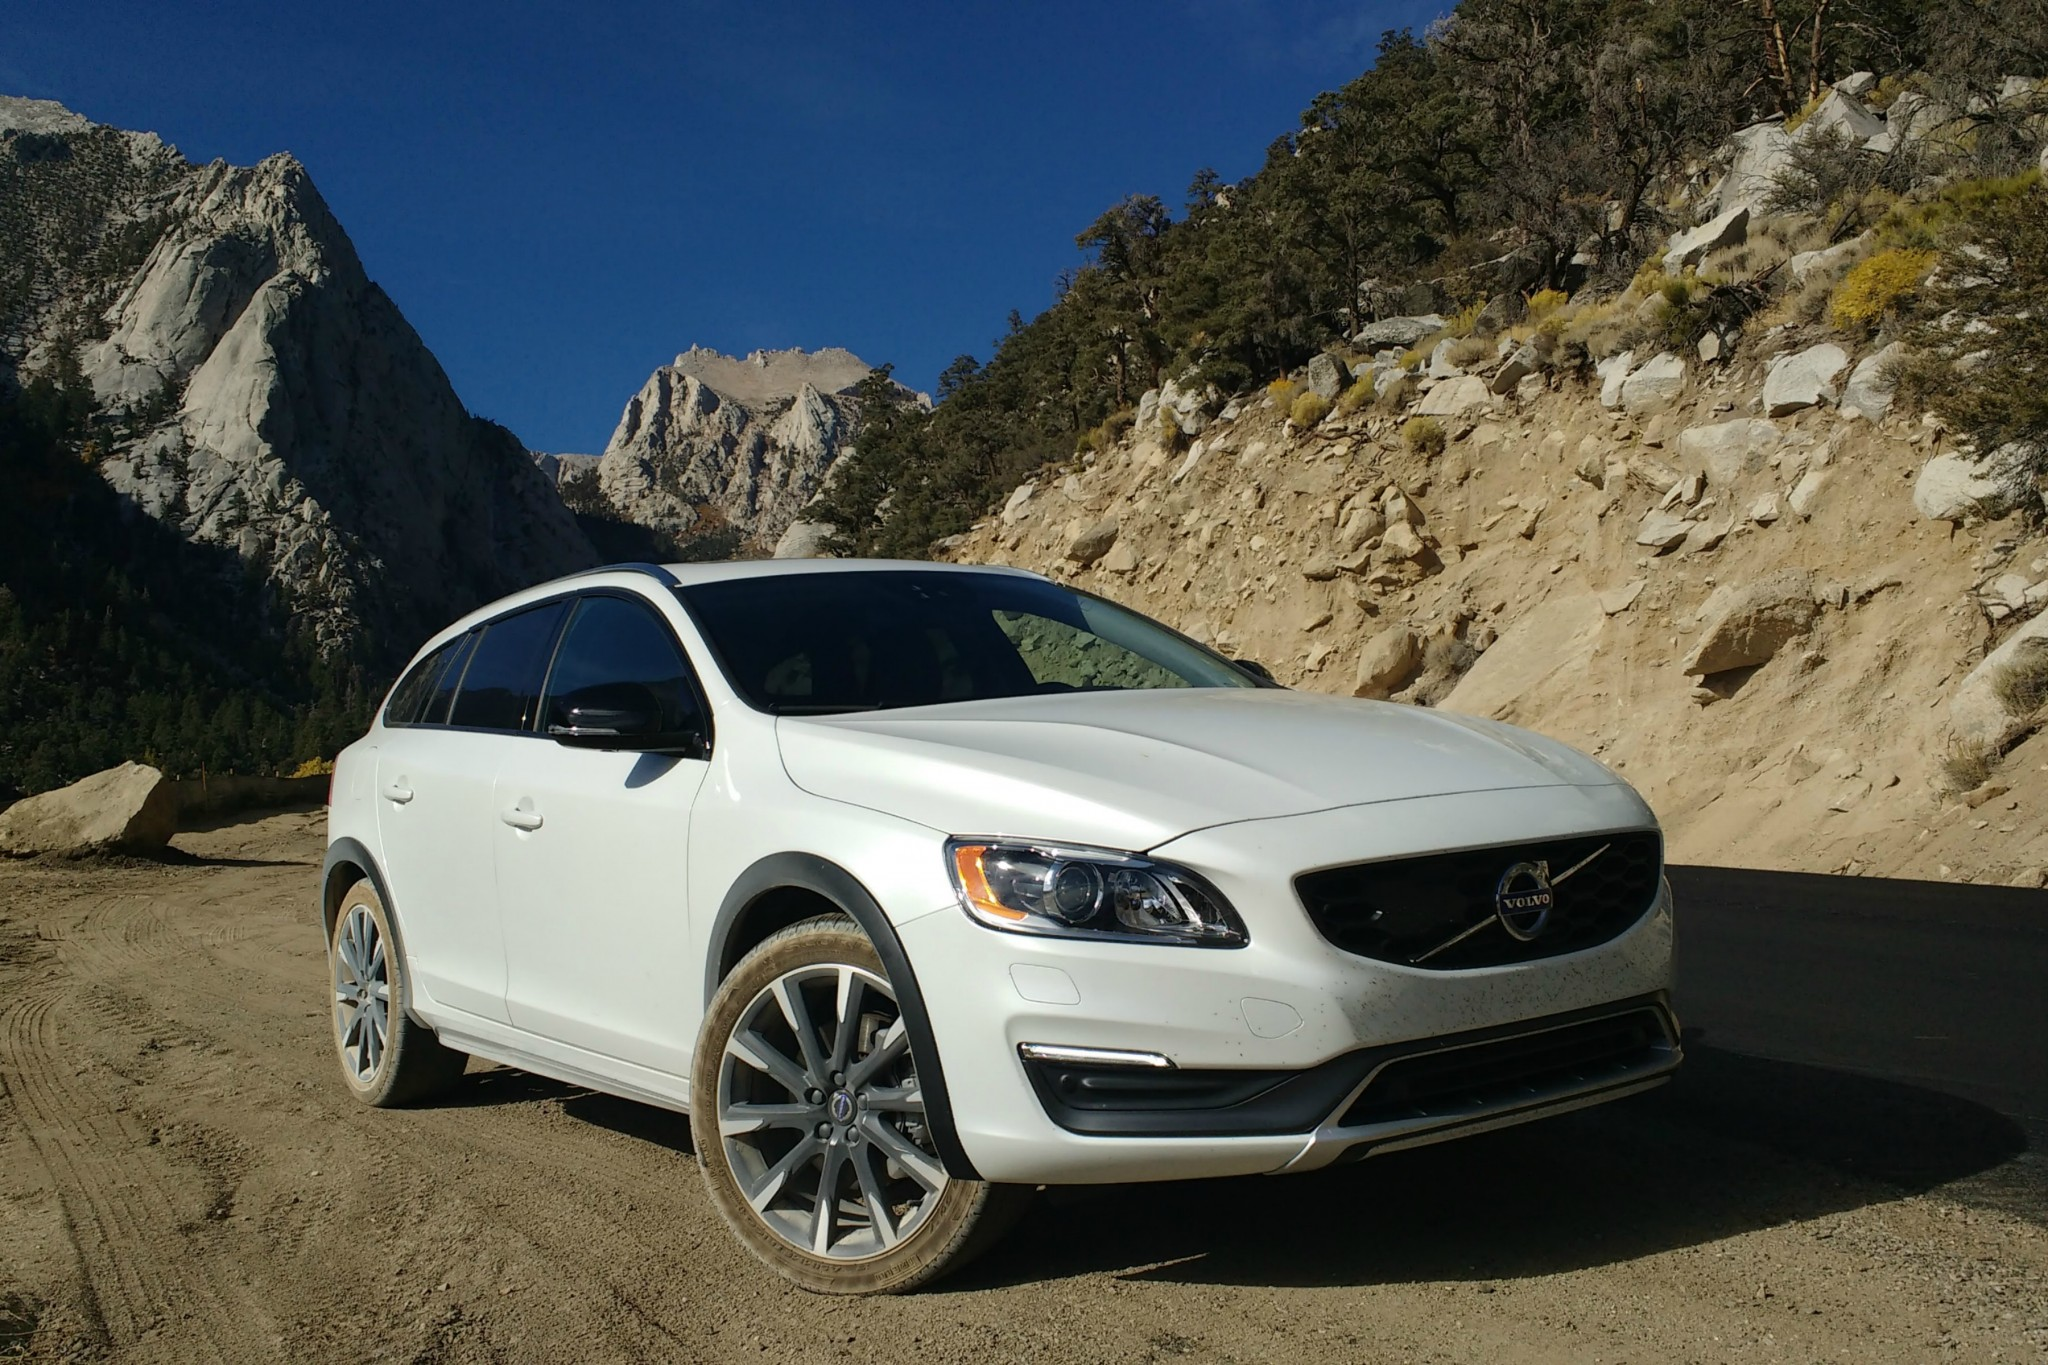 Volvo V60 Cross Country Elegant Versatile Wagon NerdWallet